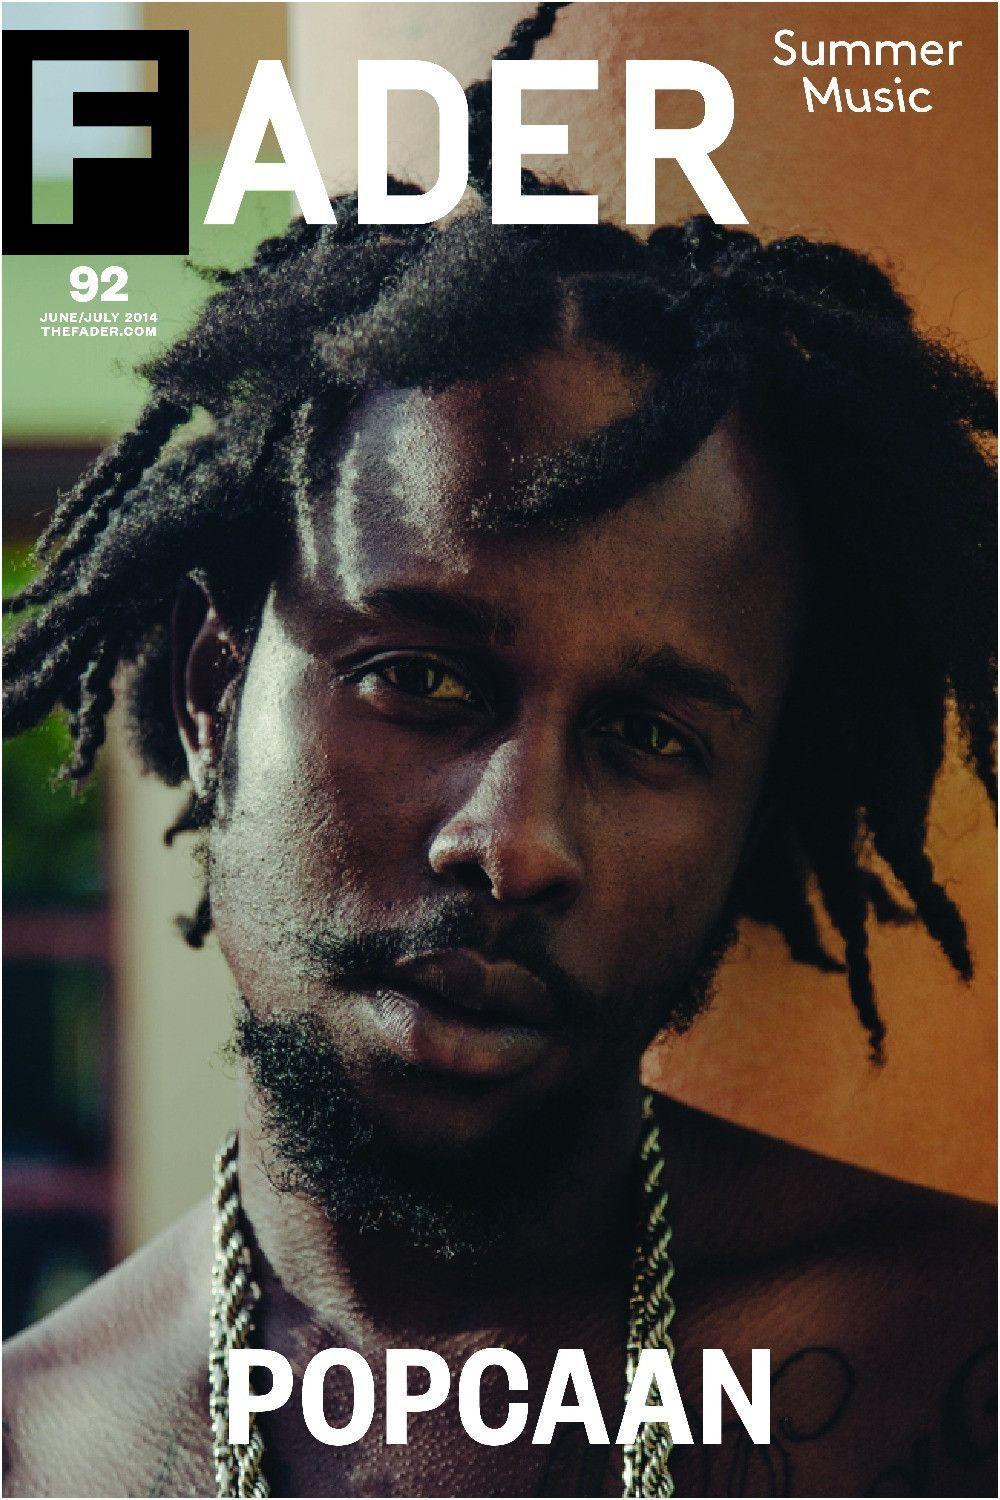 Popcaan The Fader Issue 92 Cover 20 X 30 Poster With Images